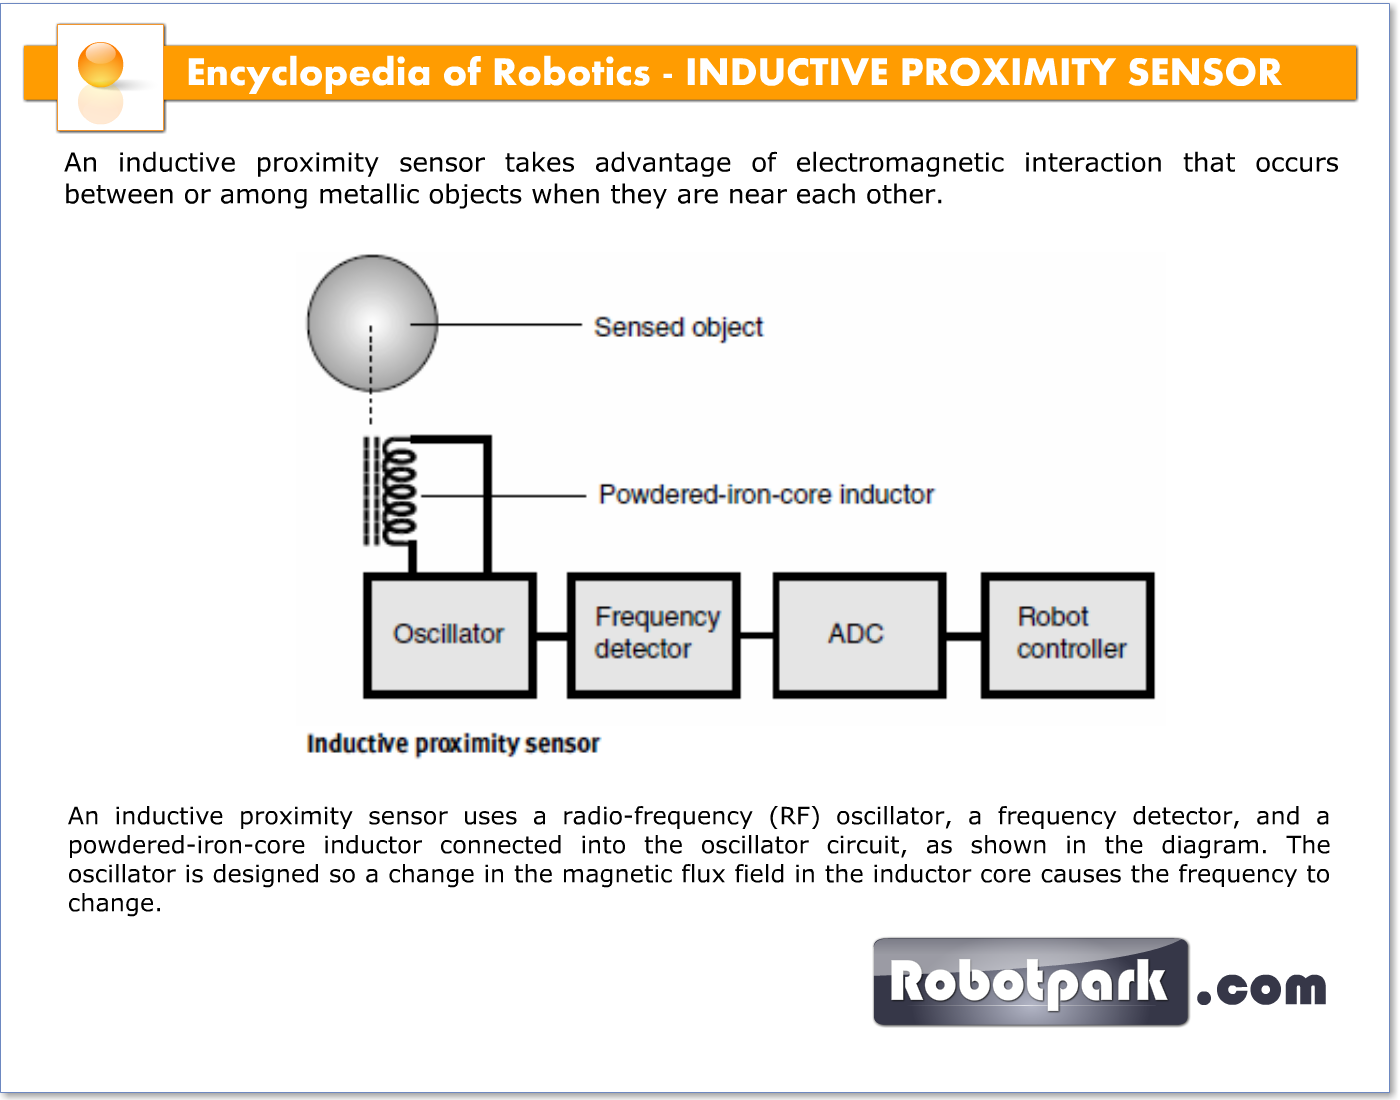 Circuit Diagram Of Inductive Proximity Sensor Wiring 2wire 21069 Robotpark Academy Rh Com For